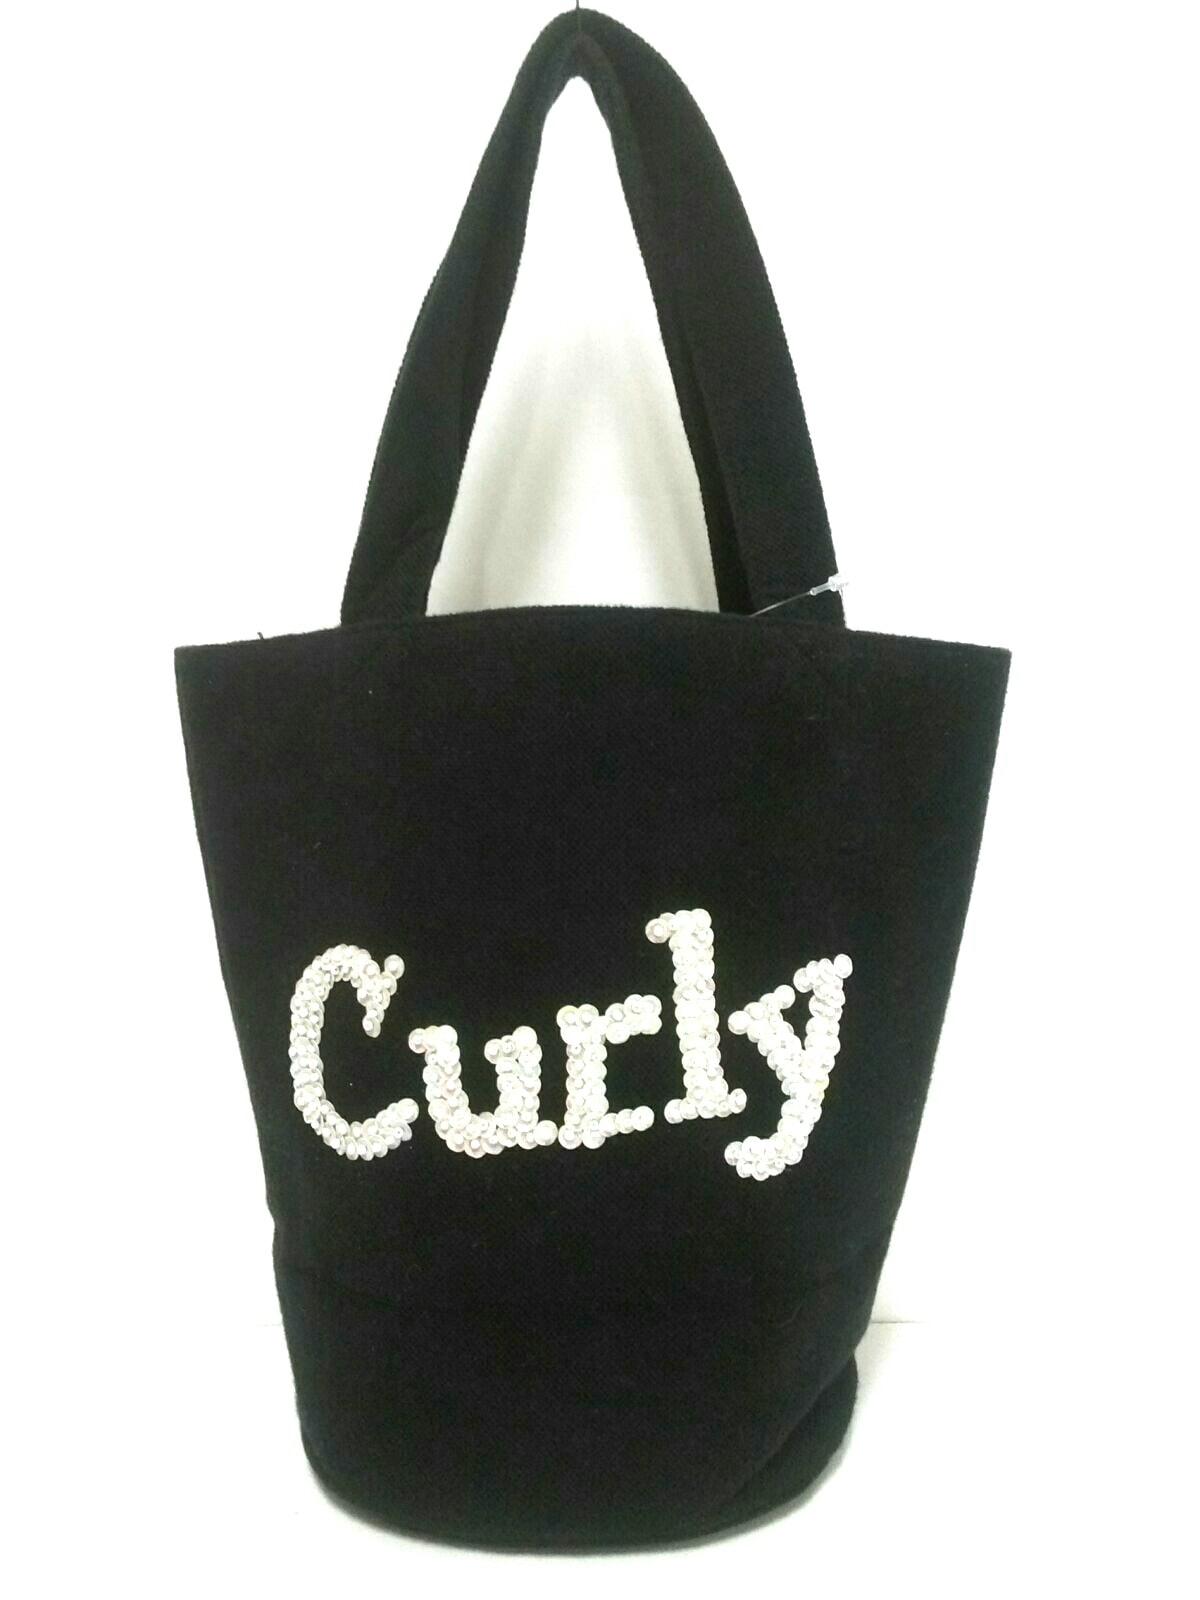 Curly Collection(カーリーコレクション)のトートバッグ